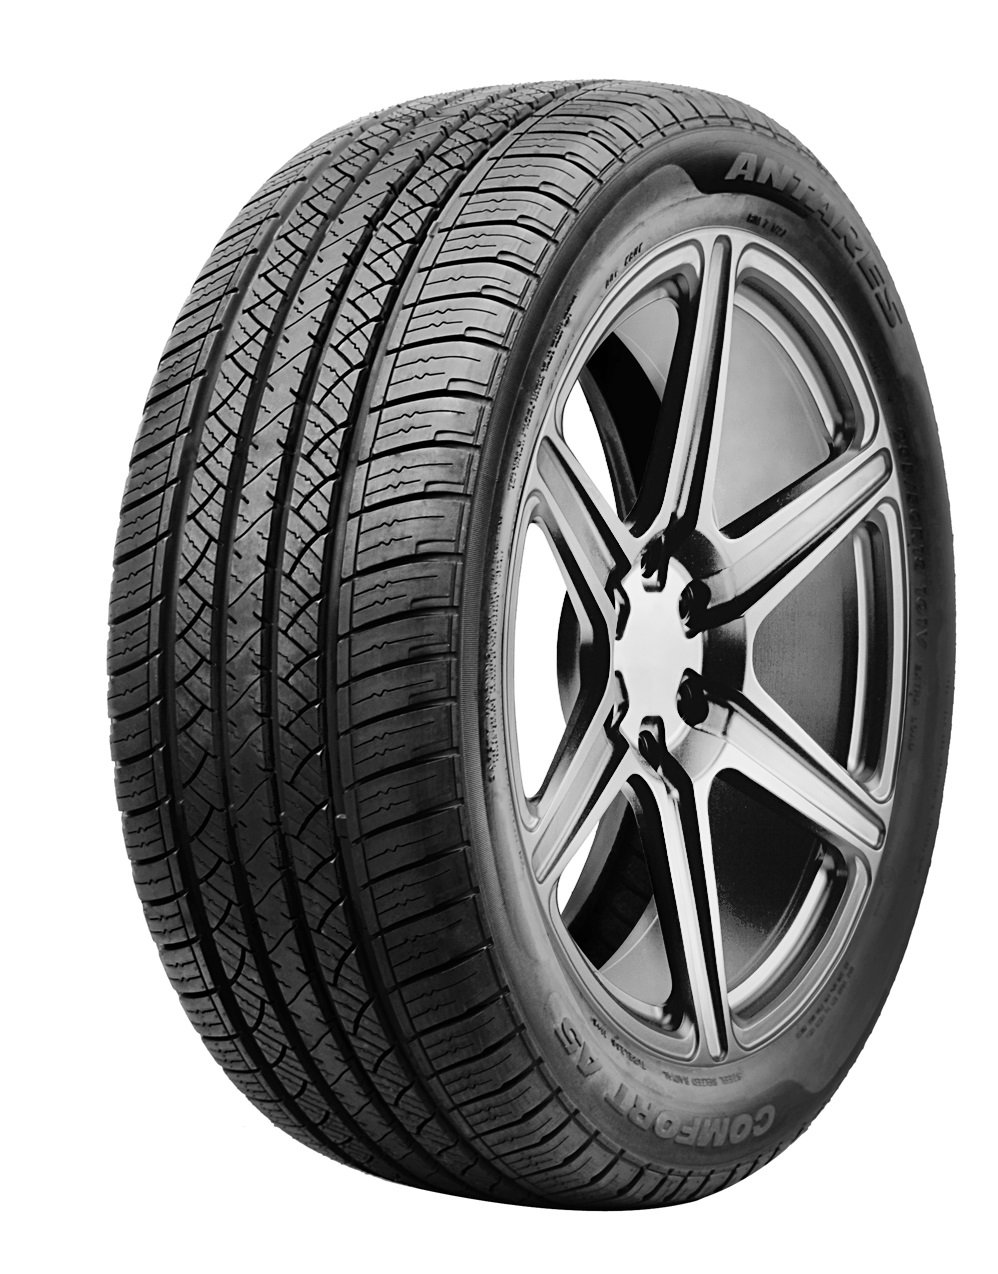 Antares COMFORT A5 All-Season Radial Tire - 215/55R18 95H 10118527